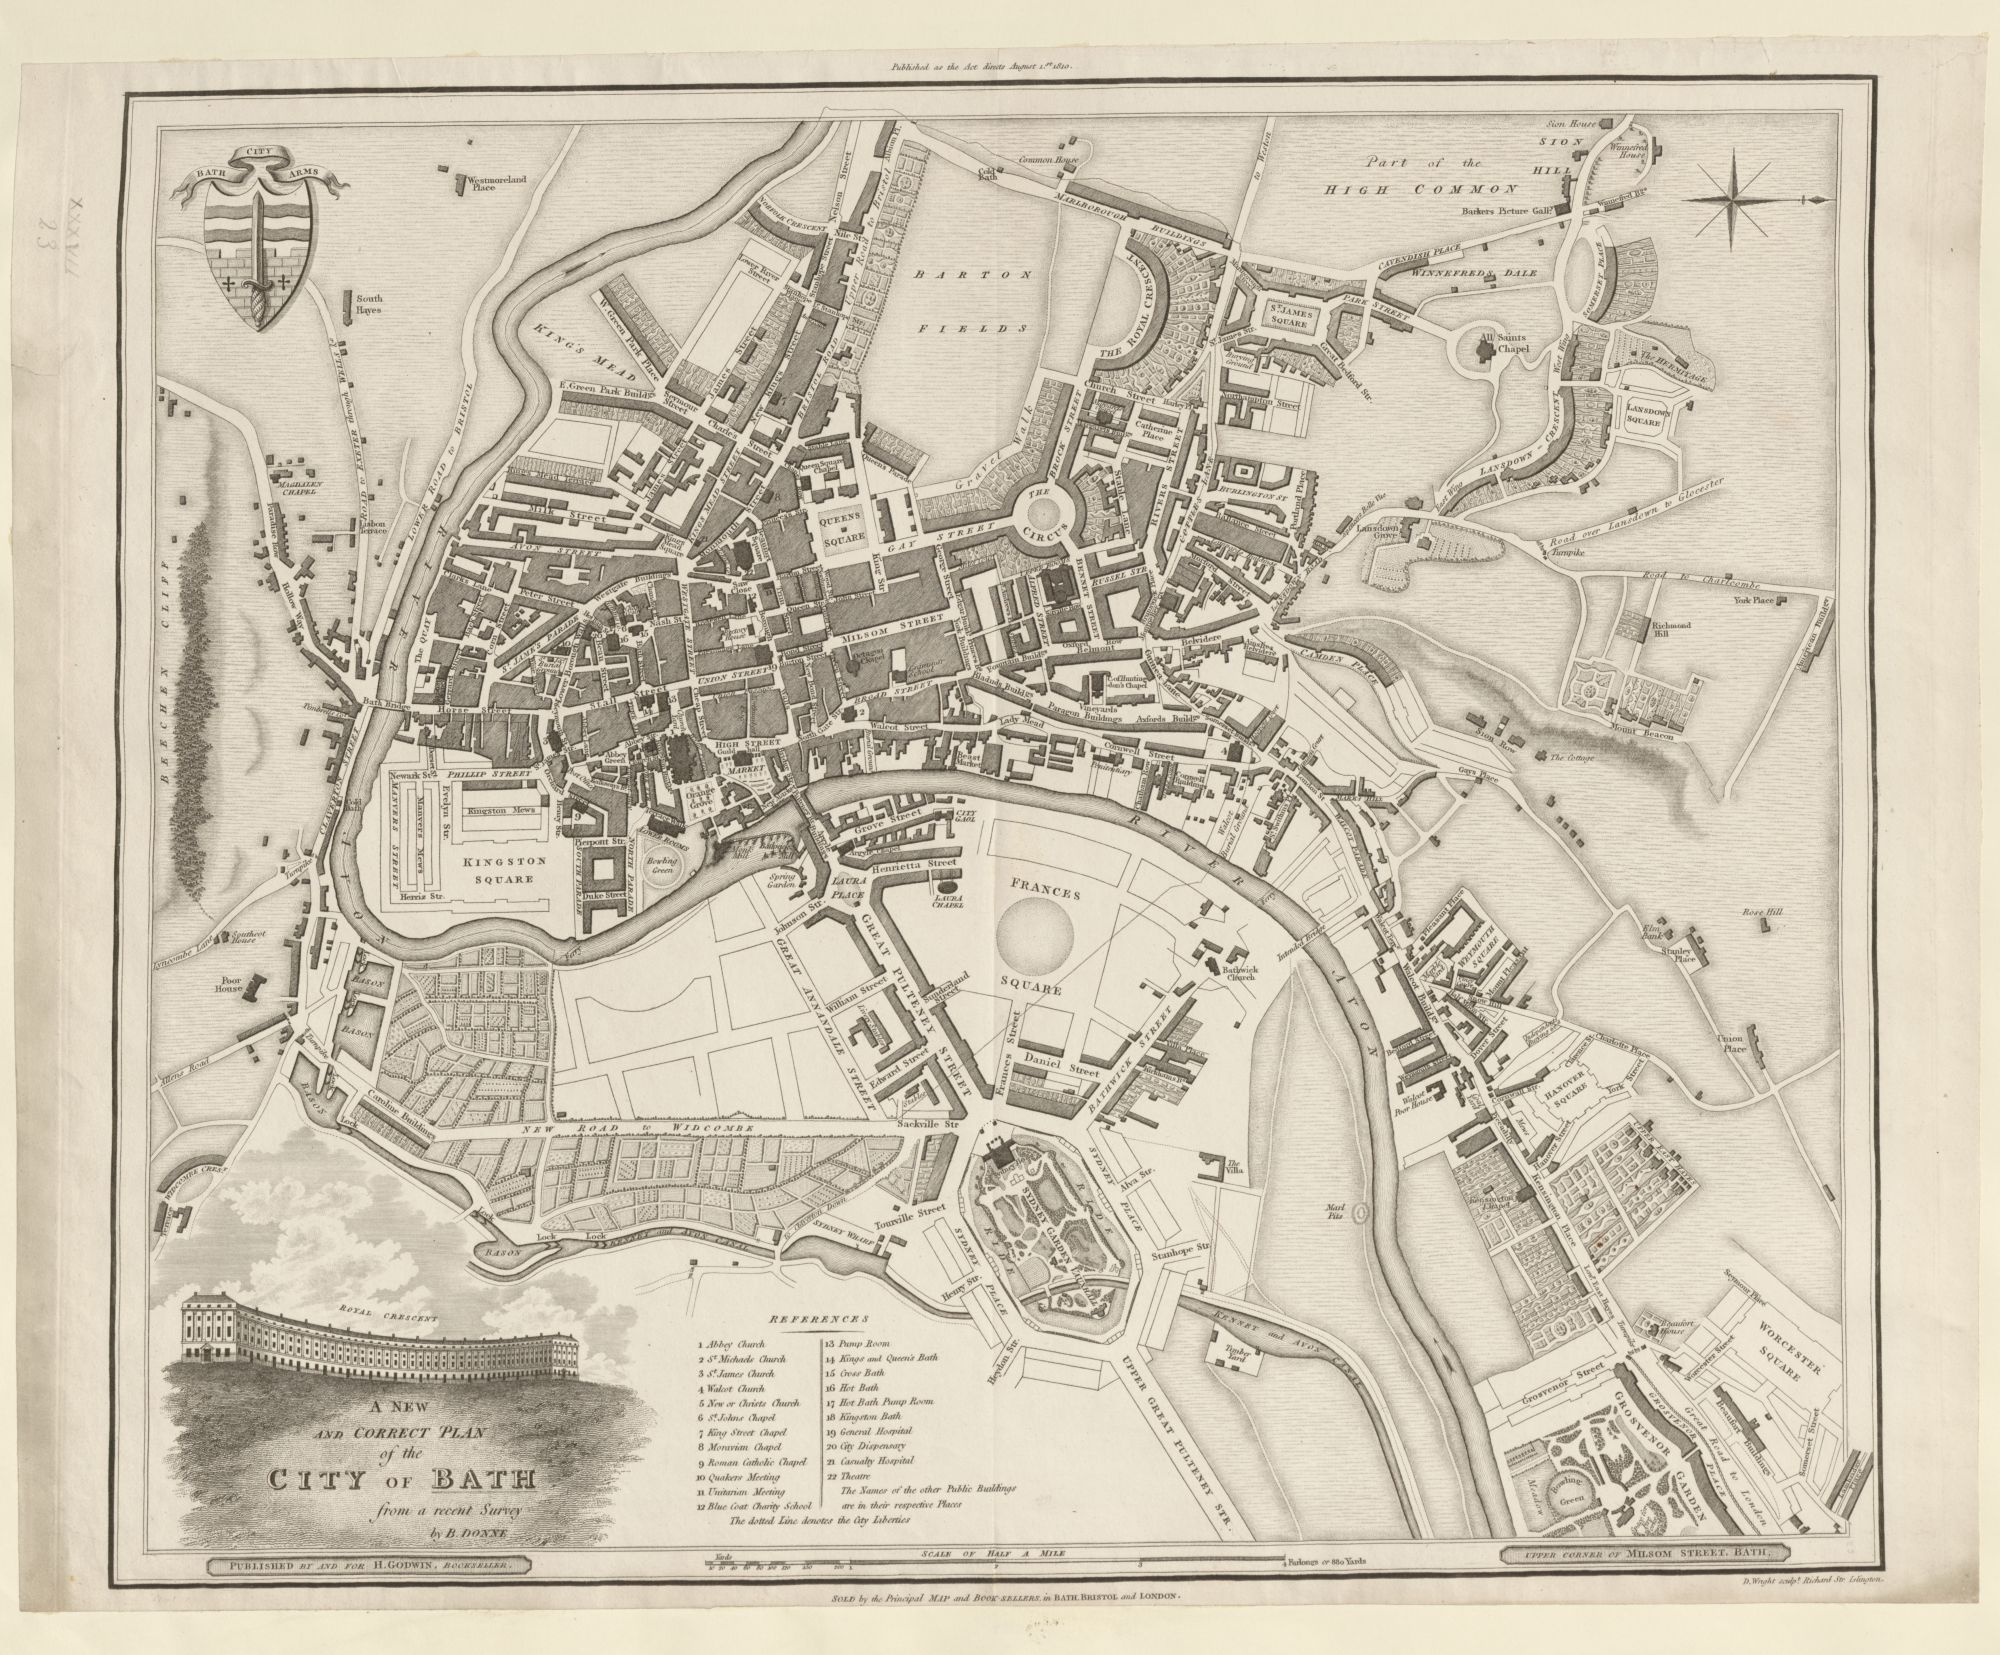 A NEW AND CORRECT PLAN of the CITY OF BATH / from a recent Survey. by B. DONNE., Benjamin Donne, 1729-1798, surveyor., [Bath] : Published by and for H. Godwin, Bookseller. Upper Corner of Milsom Street, Bath. Published as the Act directs August 1.st 1810. : Sold by the Principal Map and Book-Sellers, in Bath, Bristol and London., [1810.], Maps K.Top.37.23.